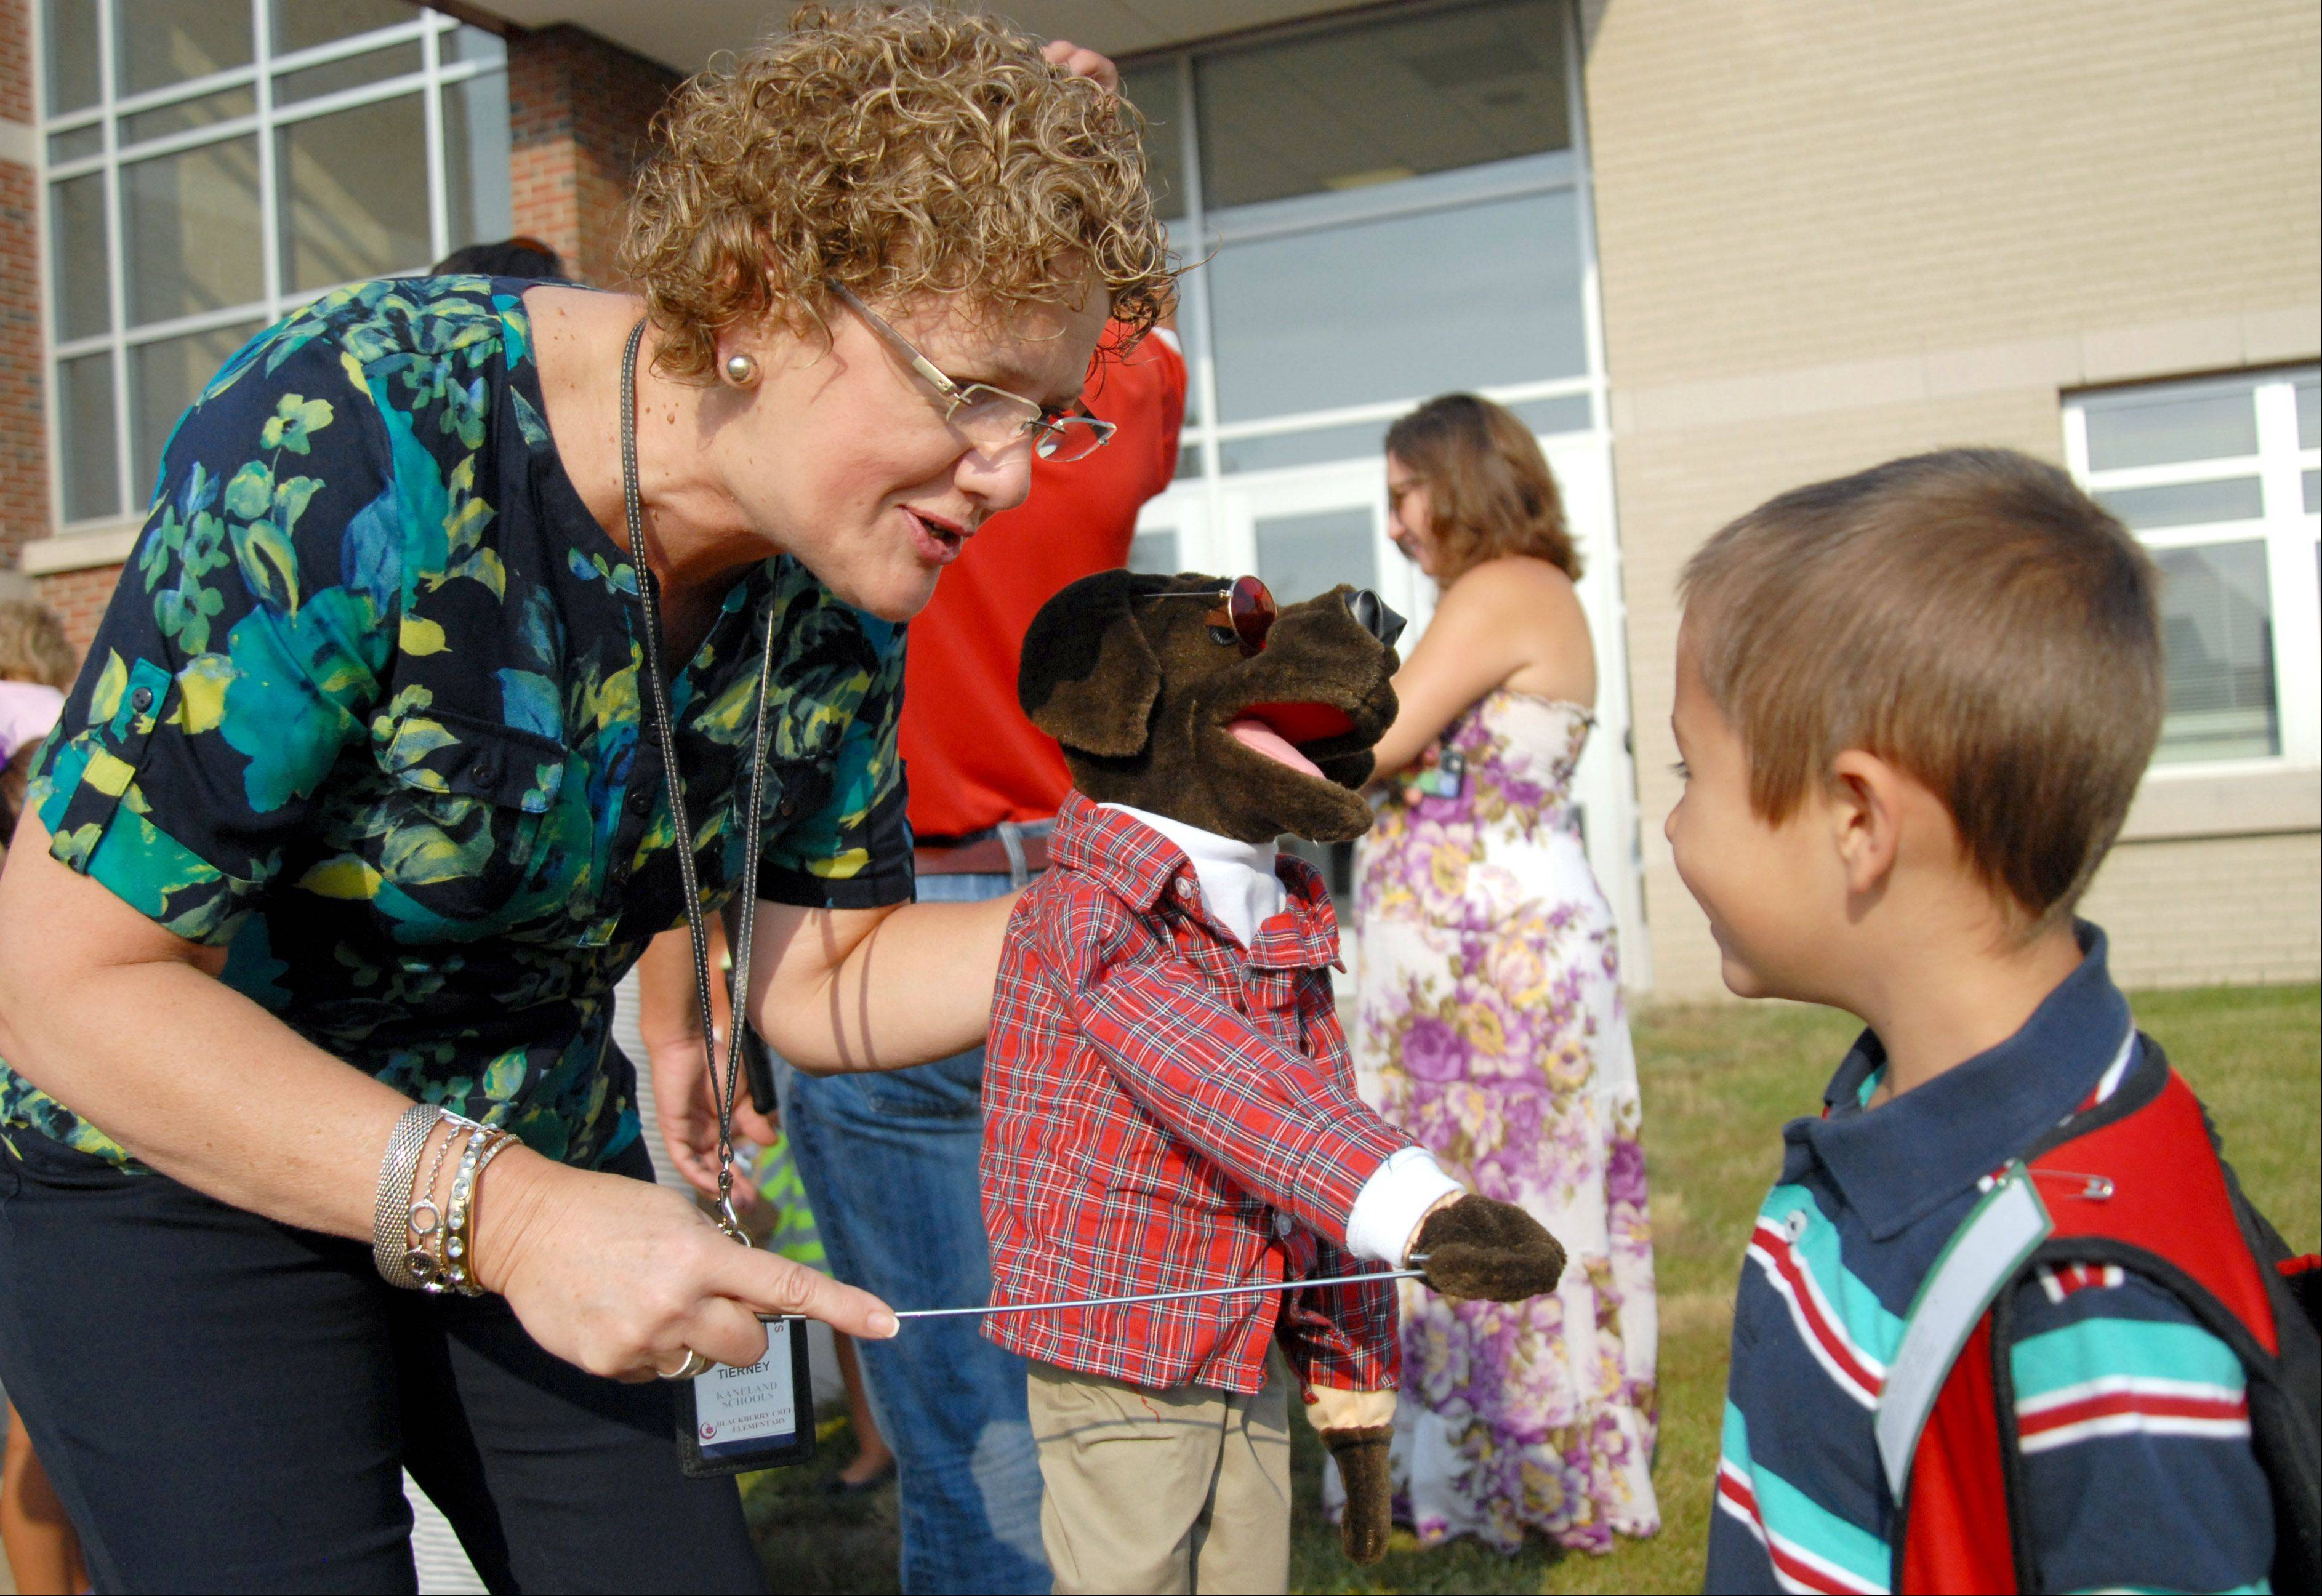 Laura Stoecker/lstoecker@dailyherald.comLiterary teacher, JoAnn Tierney, introduces Blackberry to the dog to first grader, Jason Vandeveire, 6, as students line up for the first day of school at Kaneland Blackberry Creek Elementary School on Wednesday, August 21.